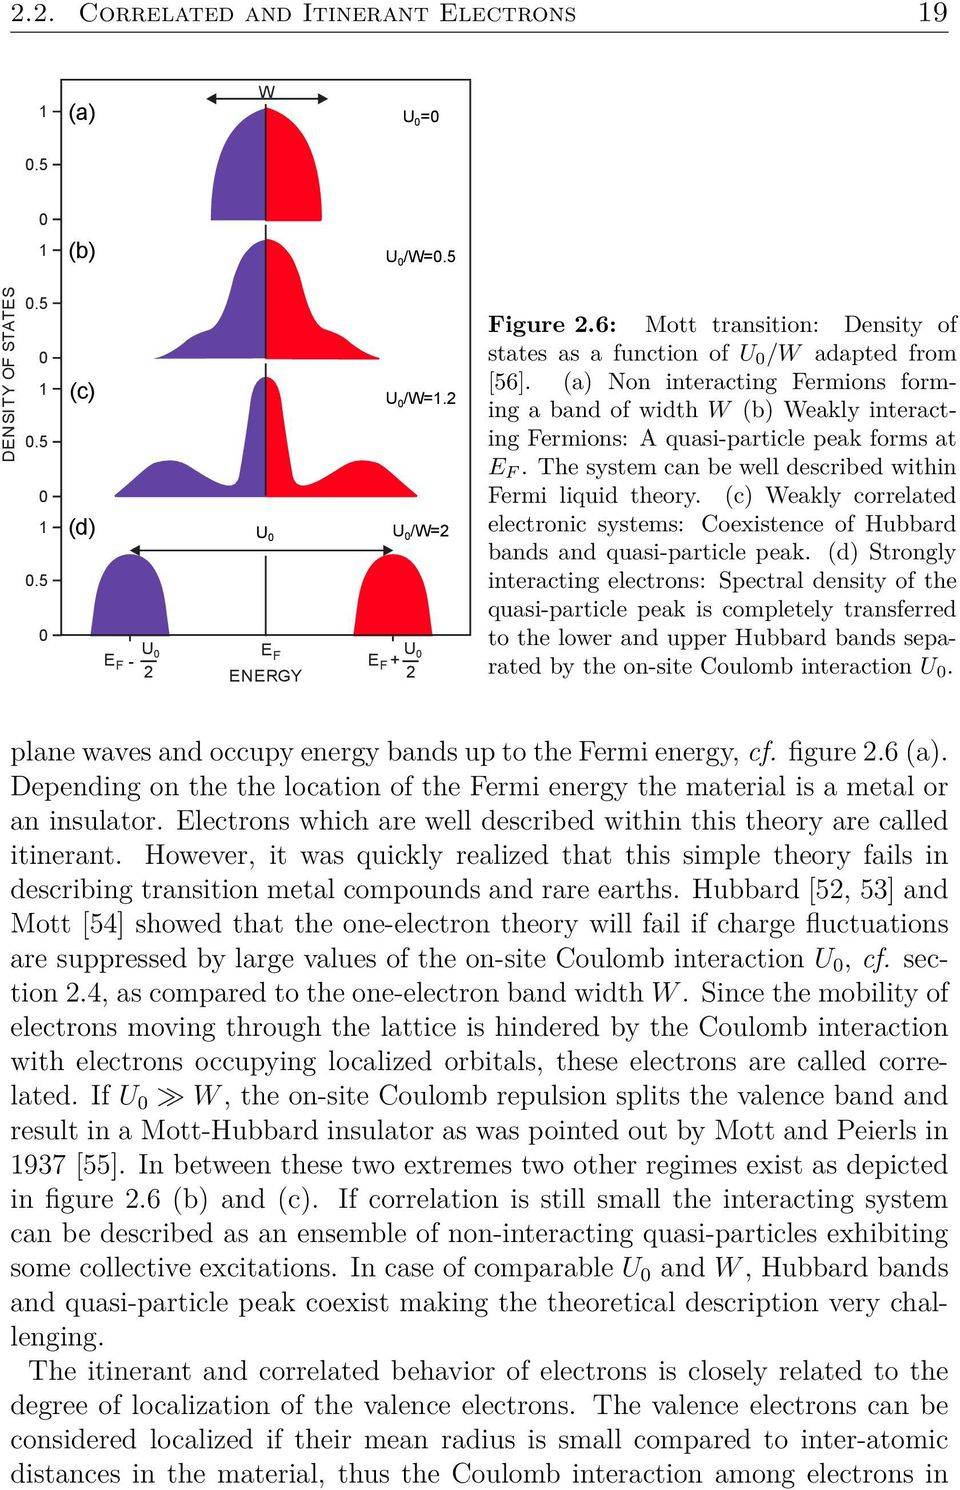 (a) Non interacting Fermions forming a band of width W (b) Weakly interacting Fermions: A quasi-particle peak forms at E F. The system can be well described within Fermi liquid theory.